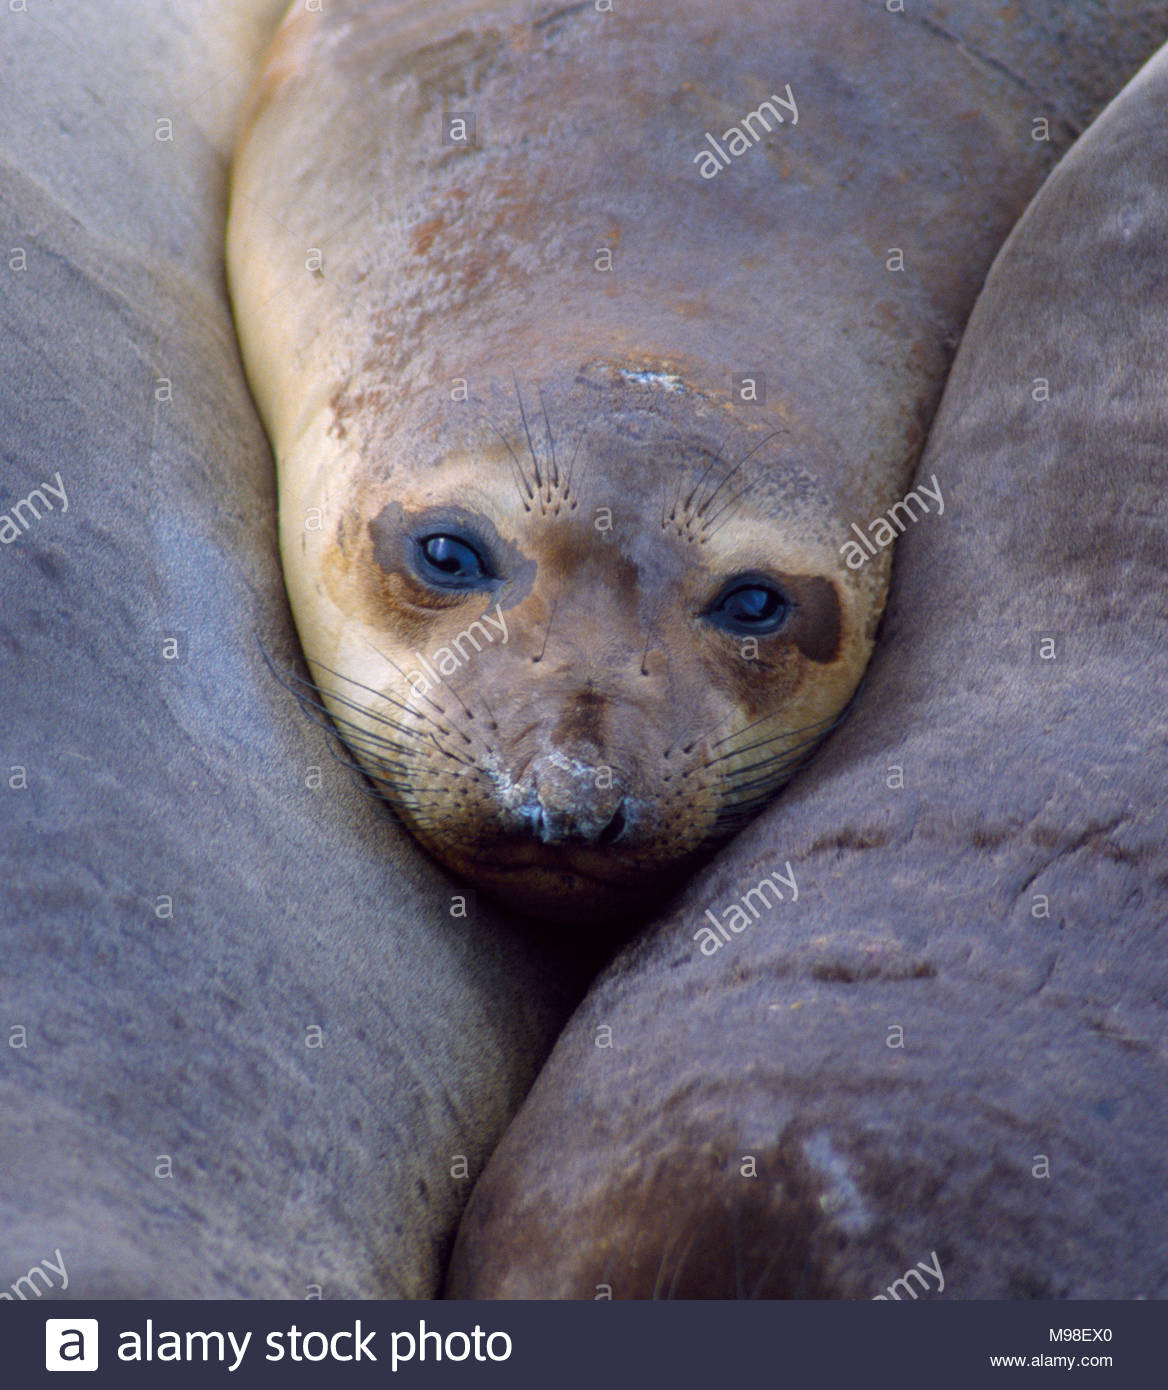 350606-1044  Copyright: George H.H. Huey  Young Northern elephant seal [Mirounga angustirostris].  San Miguel Island,  Channel Islands National Park - Stock Image